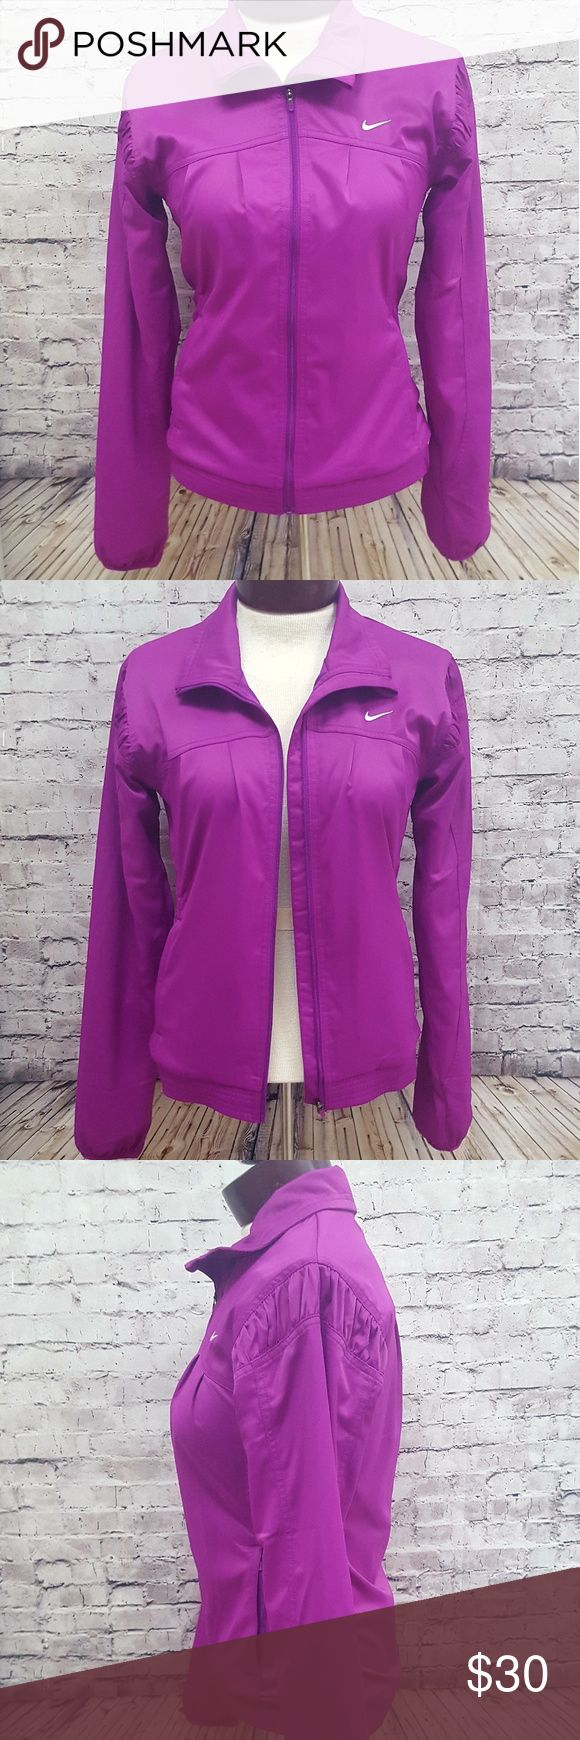 NIKE DRI FIT PURPLE FULL PLEATED  ZIP JACKET S Nike Dri-Fit Womens Purple Full Zip Up Jacket. Nice Rouching Pleated Shoulders. 2 front side zip pockets. Fully lined. Excellent condition (no rips, stains, or holes).  Size Small Material: 93% Polyester 7% Spandex  FAST SHIPPING!! Please review pictures prior to purchase. Feel free to reach out with any questions. Thank you. Nike Jackets & Coats